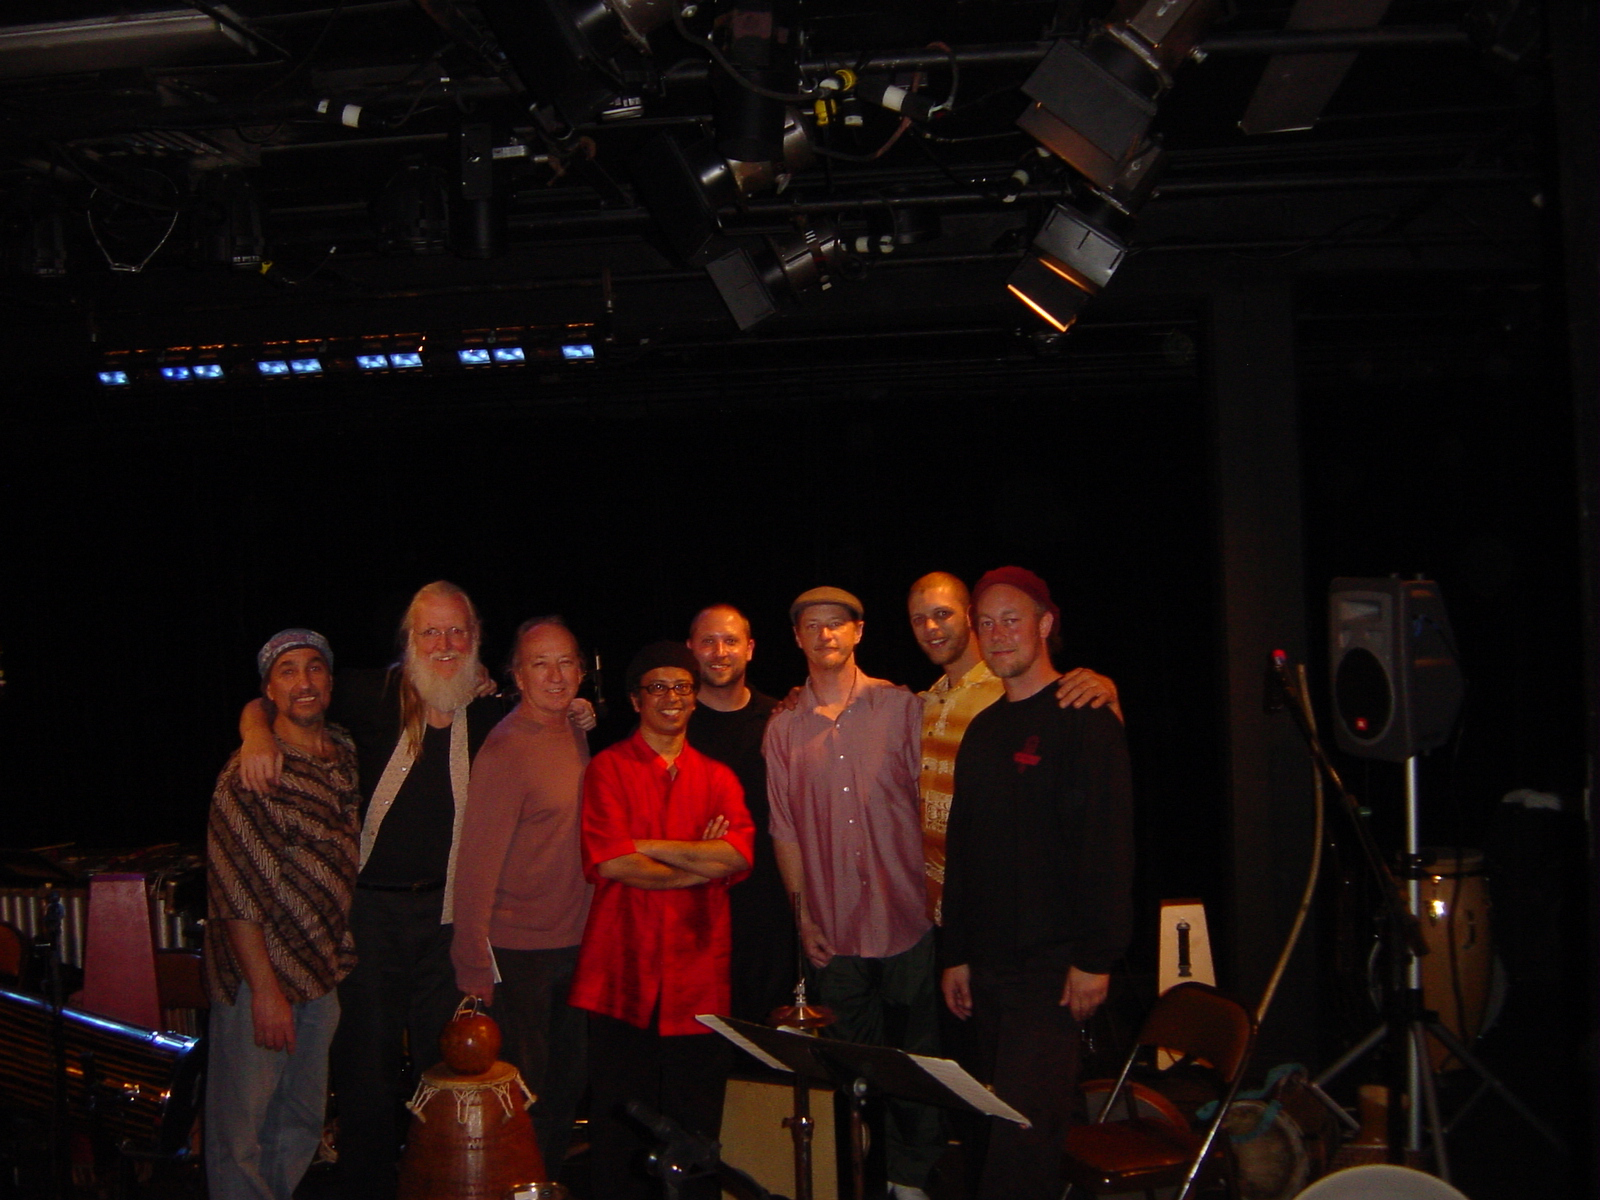 Hands On'Semble with Bramah at the Bathhouse Theatre, Dallas TX. April 17th, 2005.  (L to R:  Jamal Mohammed, Fred Hamilton, Ed Smith, Poovalur Sriji, Randy, Brad Dutz, Andrew Grueschow, Austin Wrinkle.)